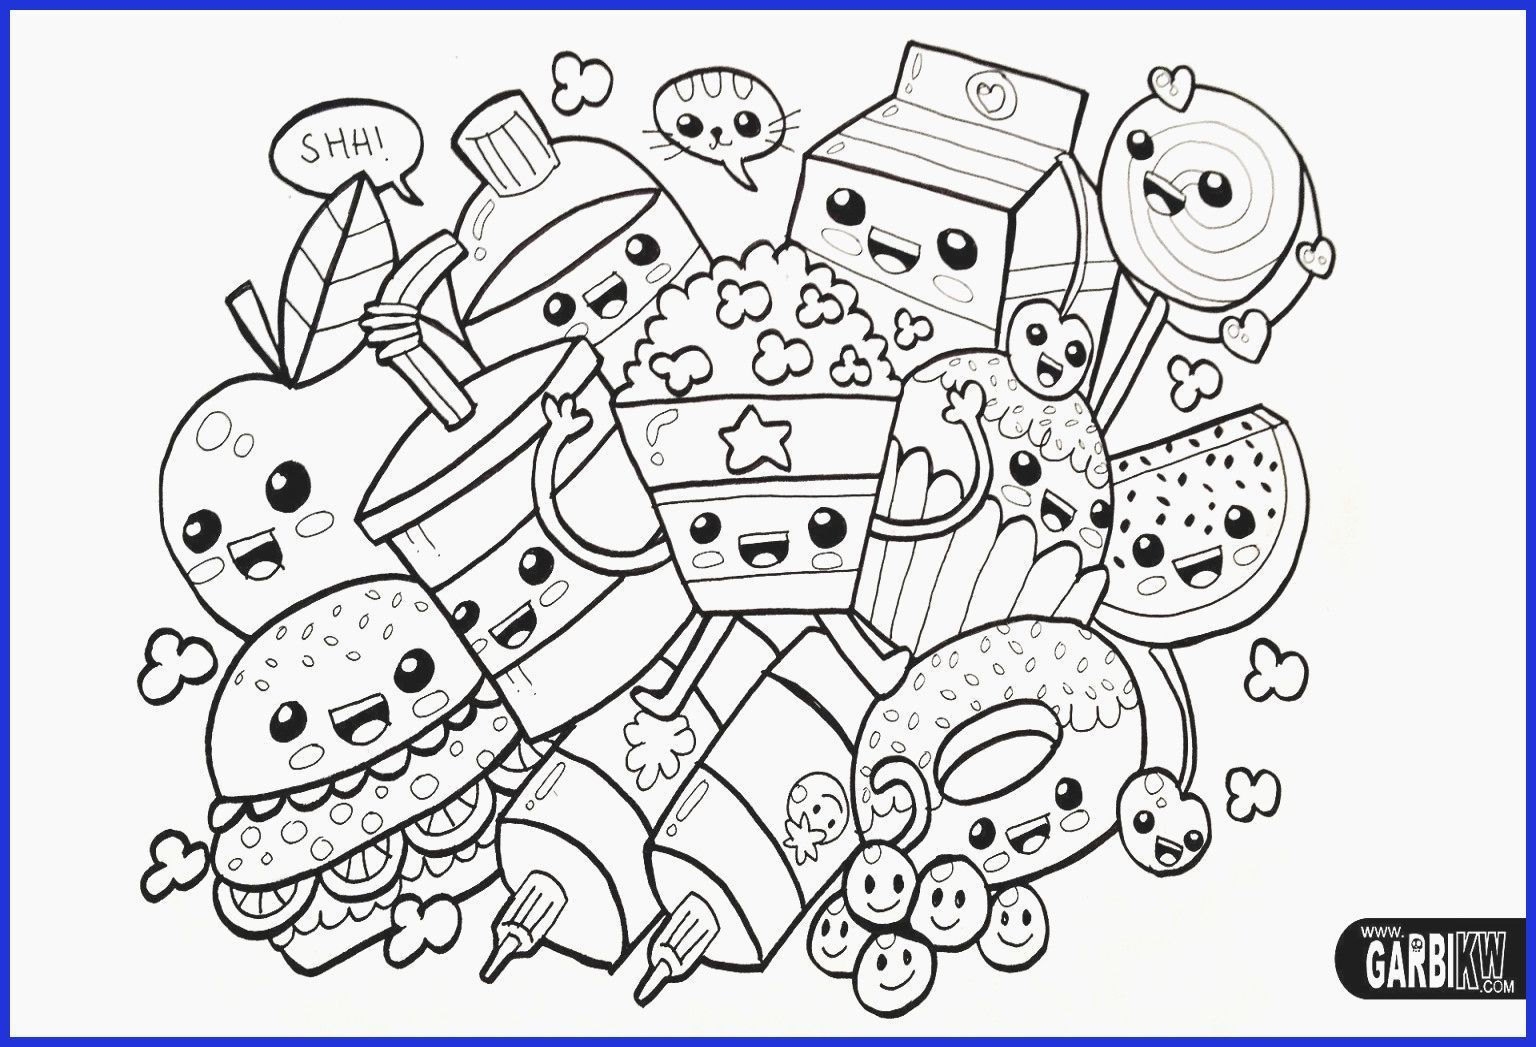 Anime Coloring Page Kawaii Beautiful Cute Anime Coloring Pages Unique 52 Most Supreme Girls Co Unicorn Coloring Pages Food Coloring Pages Disney Coloring Pages